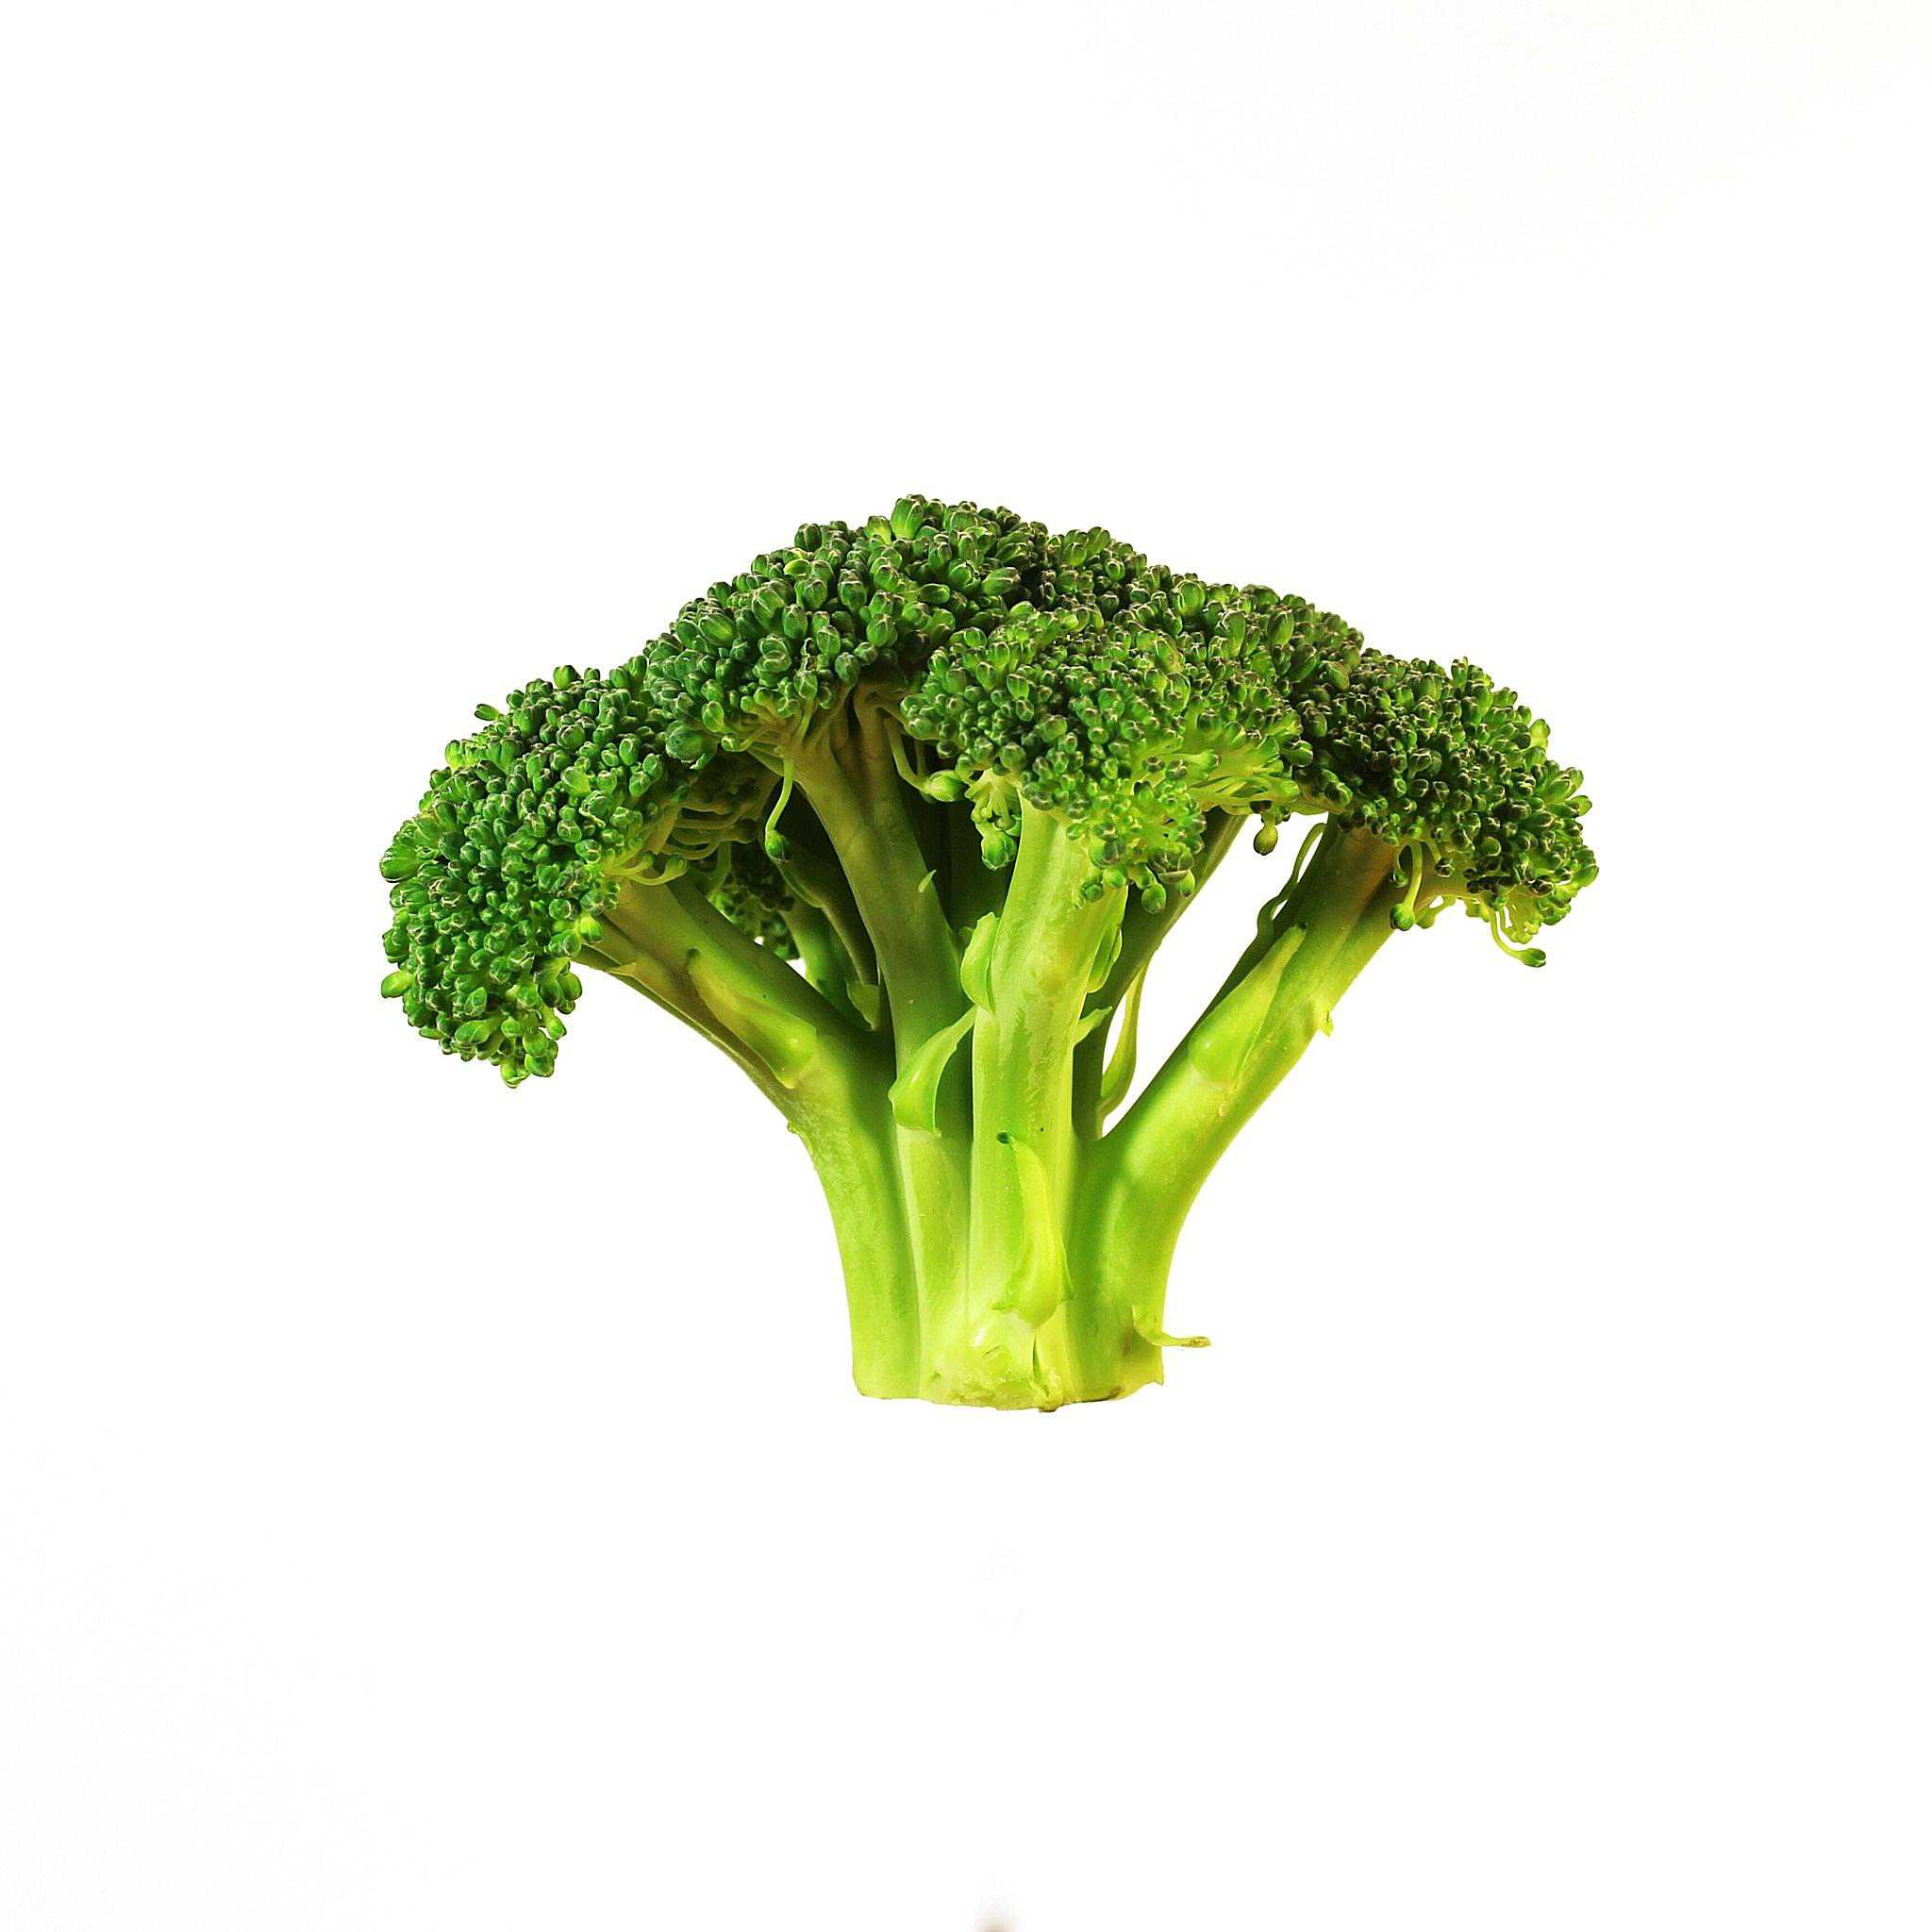 Broccoli Head On White Background